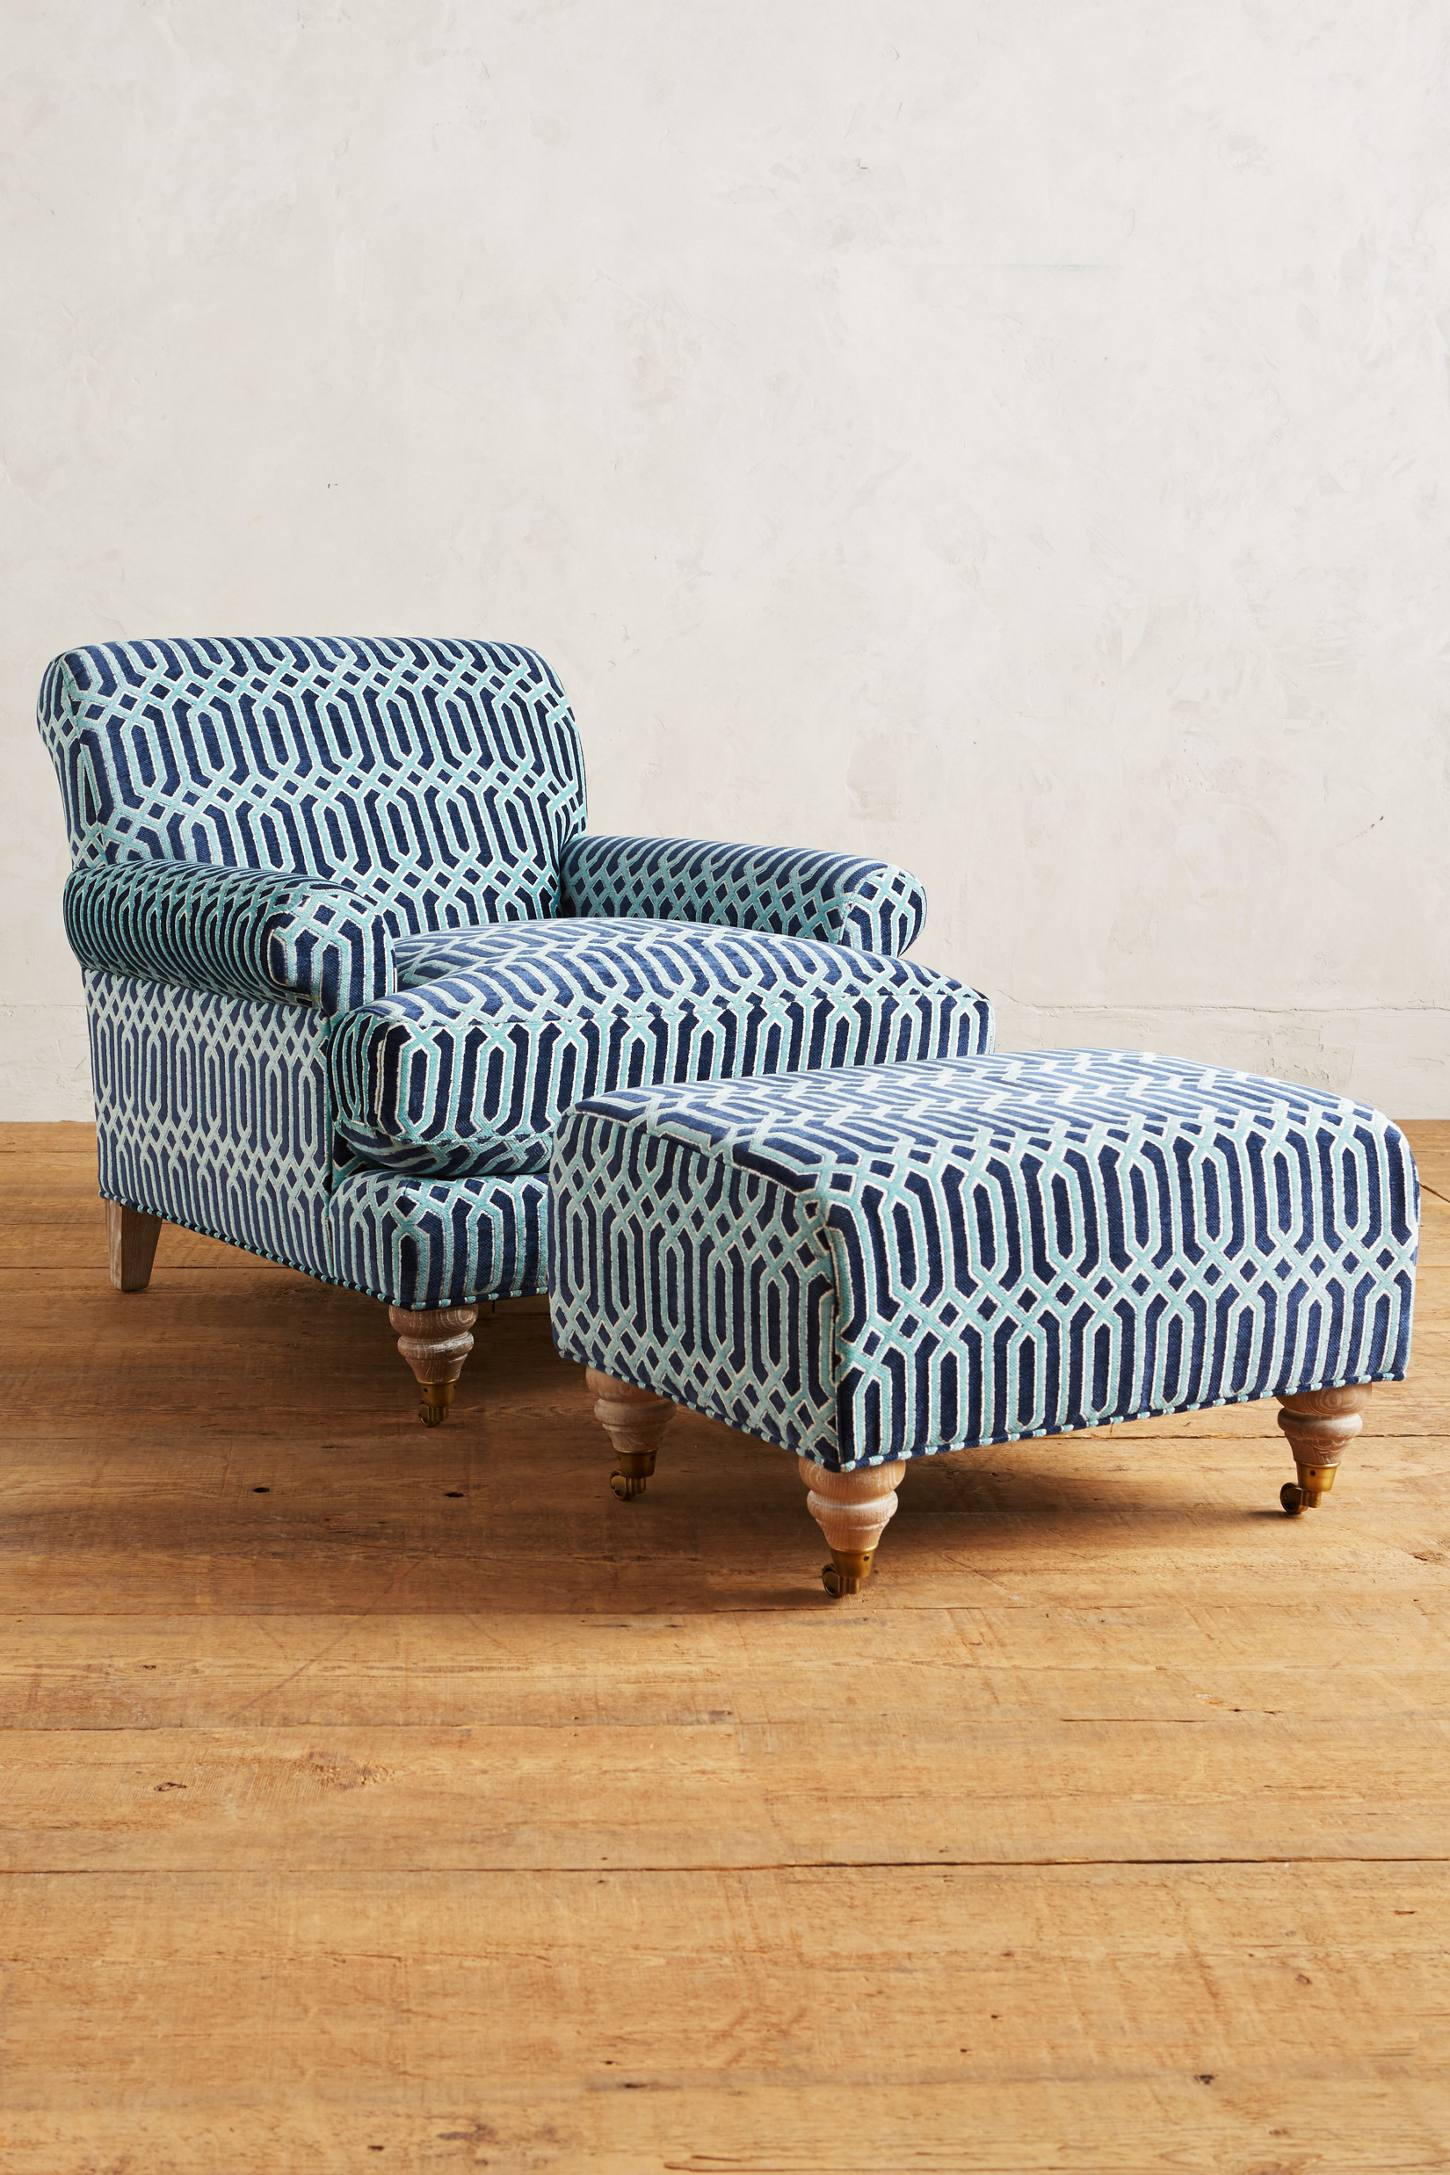 Slide View: 2: Trellis-Woven Willoughby Ottoman